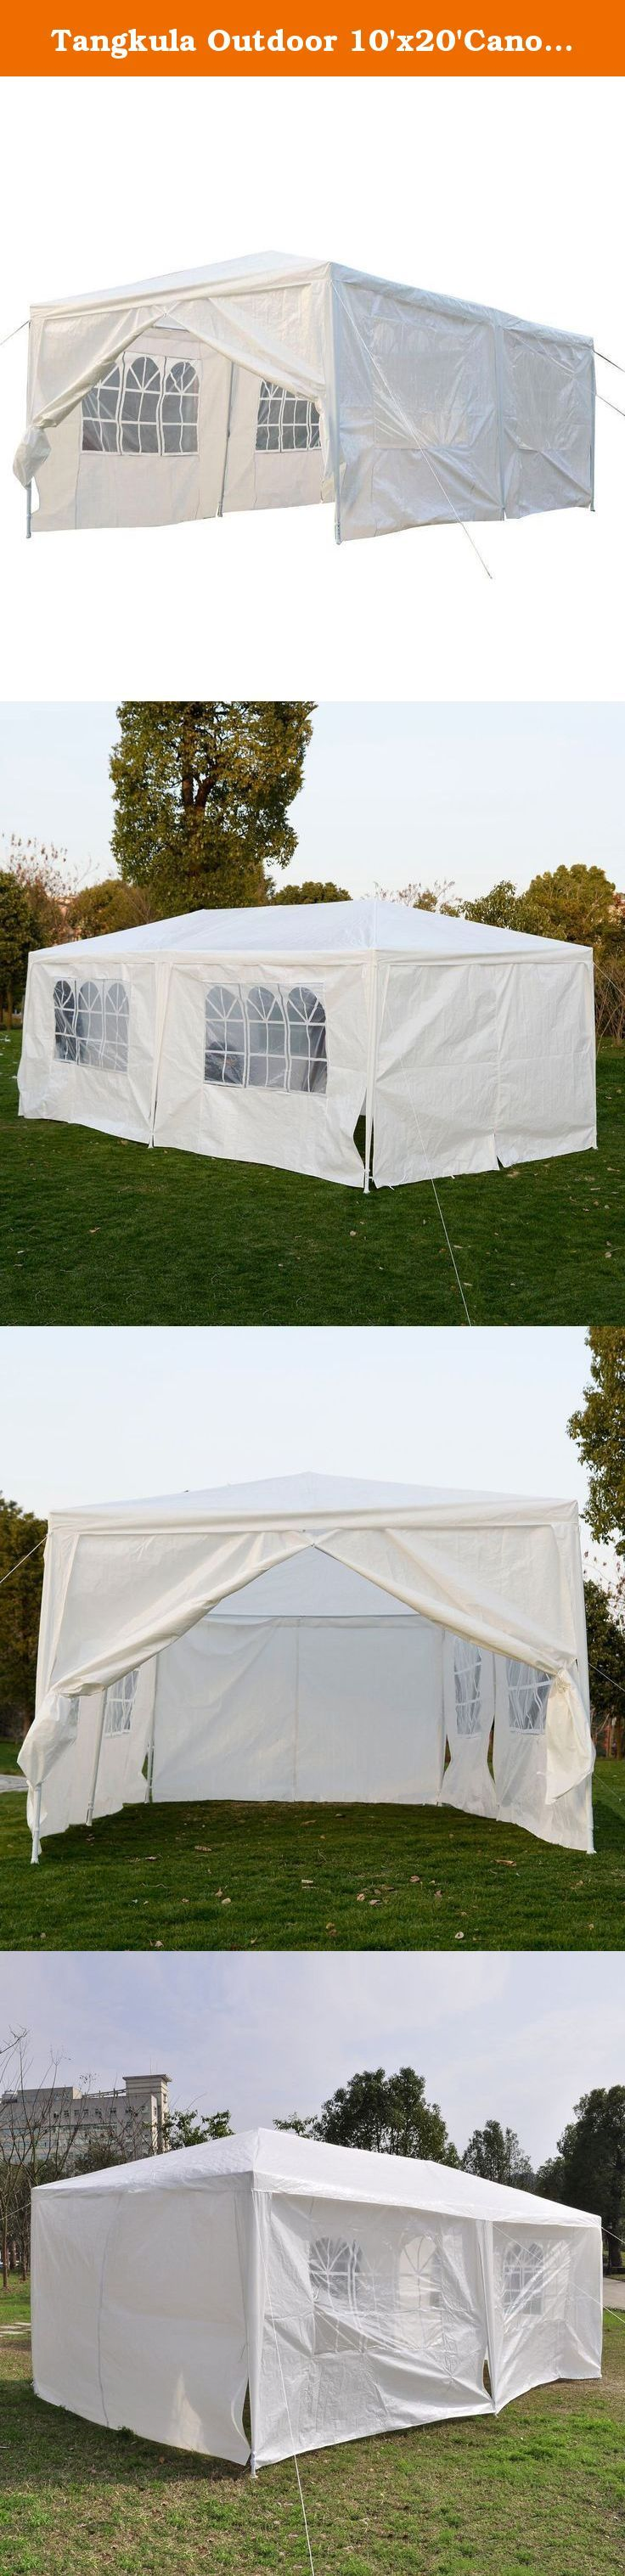 Tangkula Outdoor 10'x20'Canopy Party Wedding Tent Heavy duty Gazebo Pavilion Cater Events. Features: Brand New Durable Water Proof Polyethylene High quality, rust & corrosion resistant powder coated steel framework High strength joint fittings Easy and fast to set up suitable for all kinds of events All necessary Hardware is included Great for Commercial use / Parties / backyard events, etc Comes with Ropes and Stakes for added Stability Installation Manual Included.